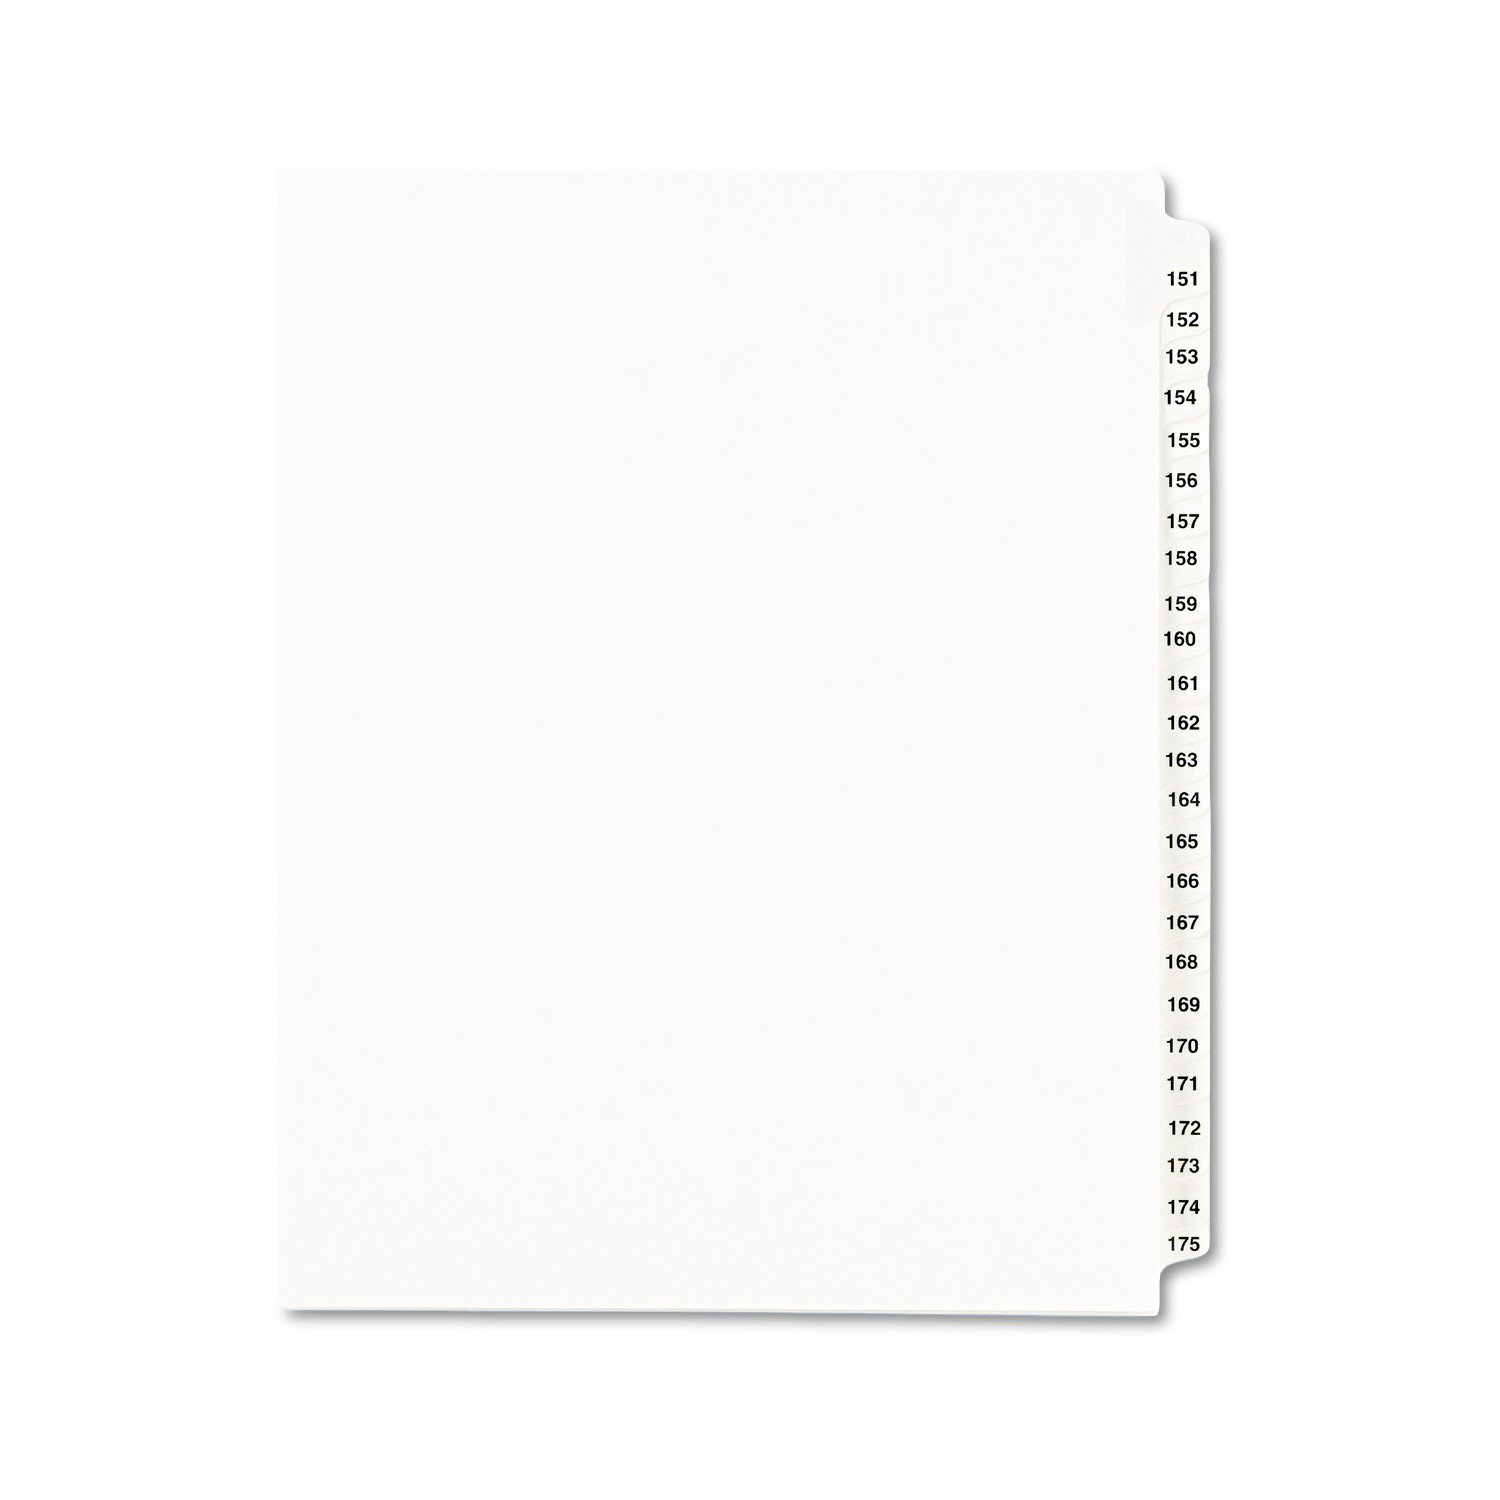 Avery Legal Dividers, Standard Collated Sets, 151-175 Tab Set (01336)